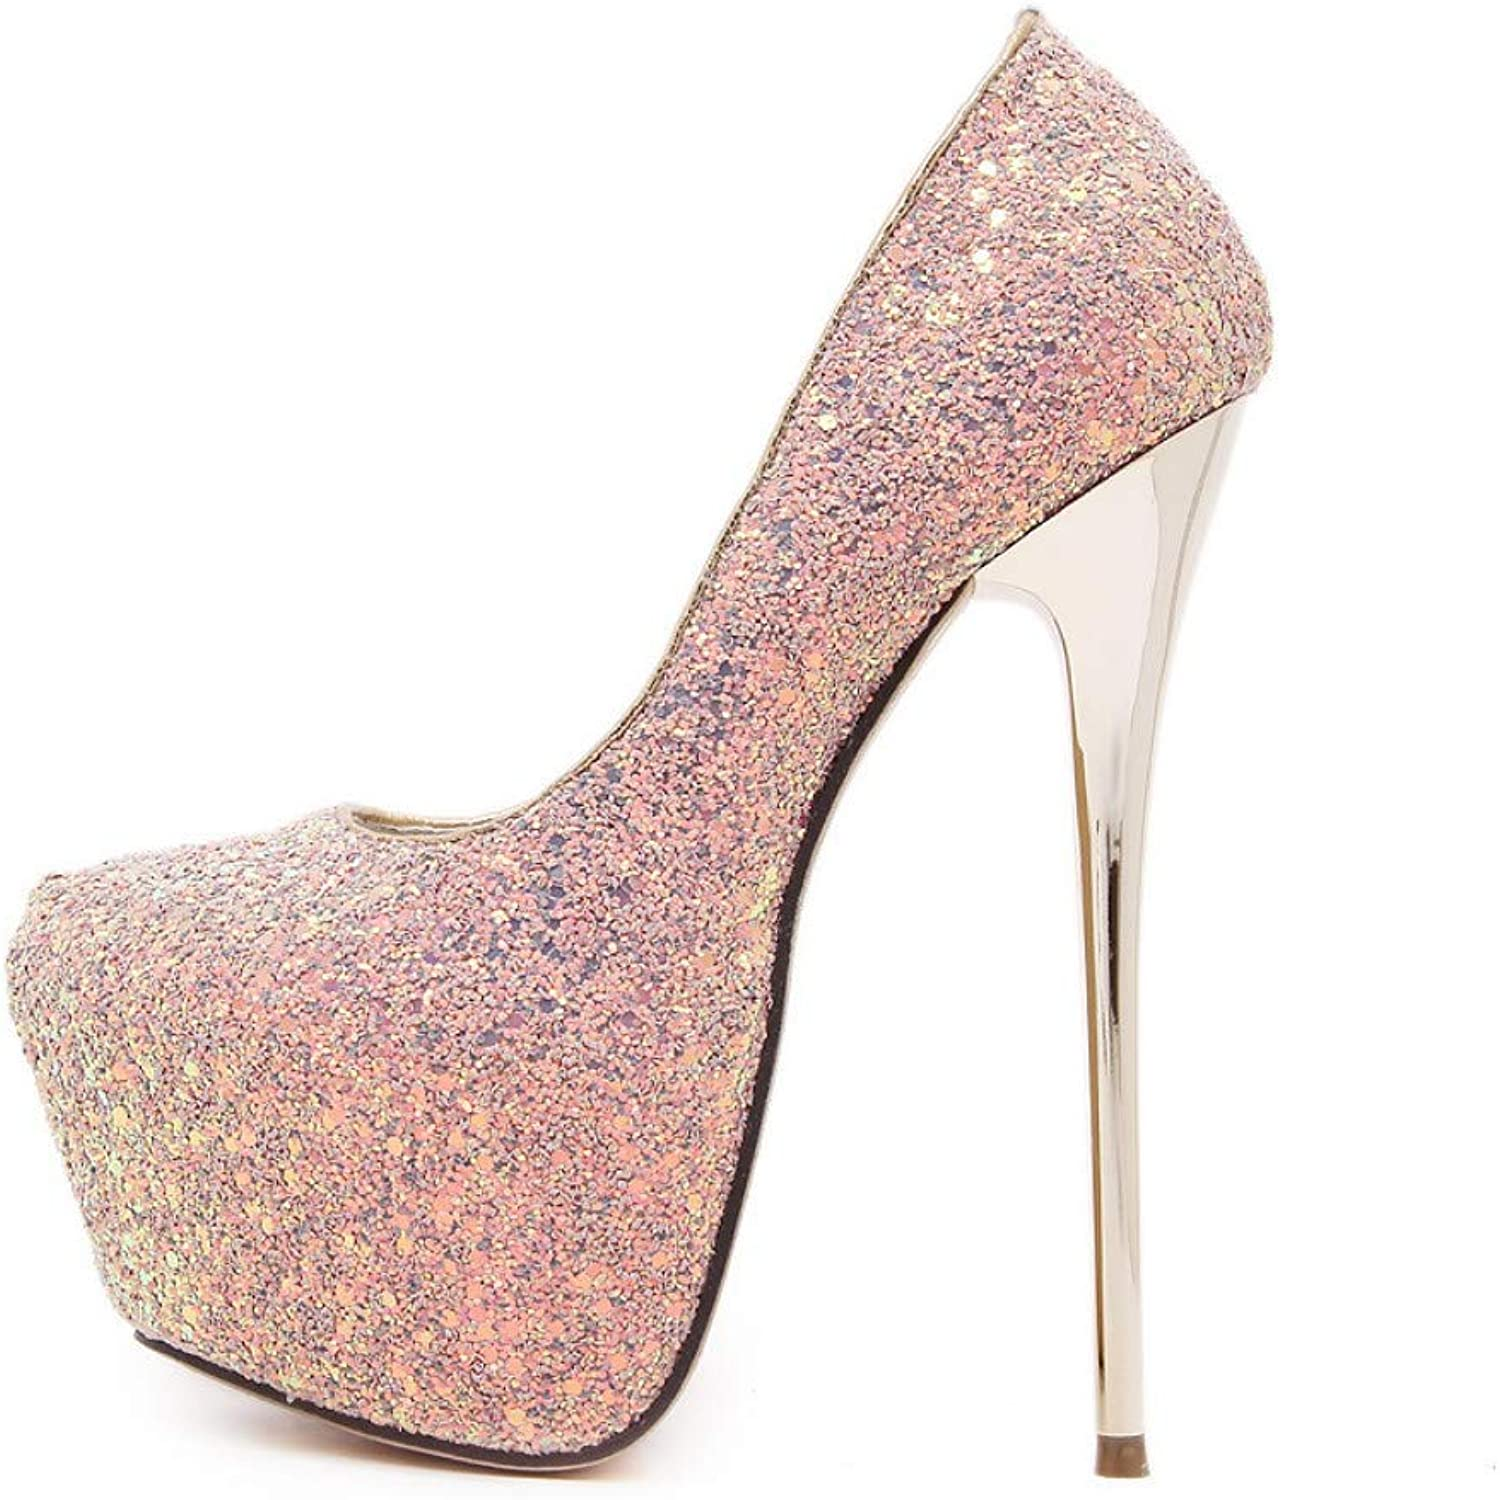 JQfashion Women's High-Heeled shoes Spring and Summer Single shoes Sequins Waterproof Table Fine-Heeled Sexy Night Club 16Cm